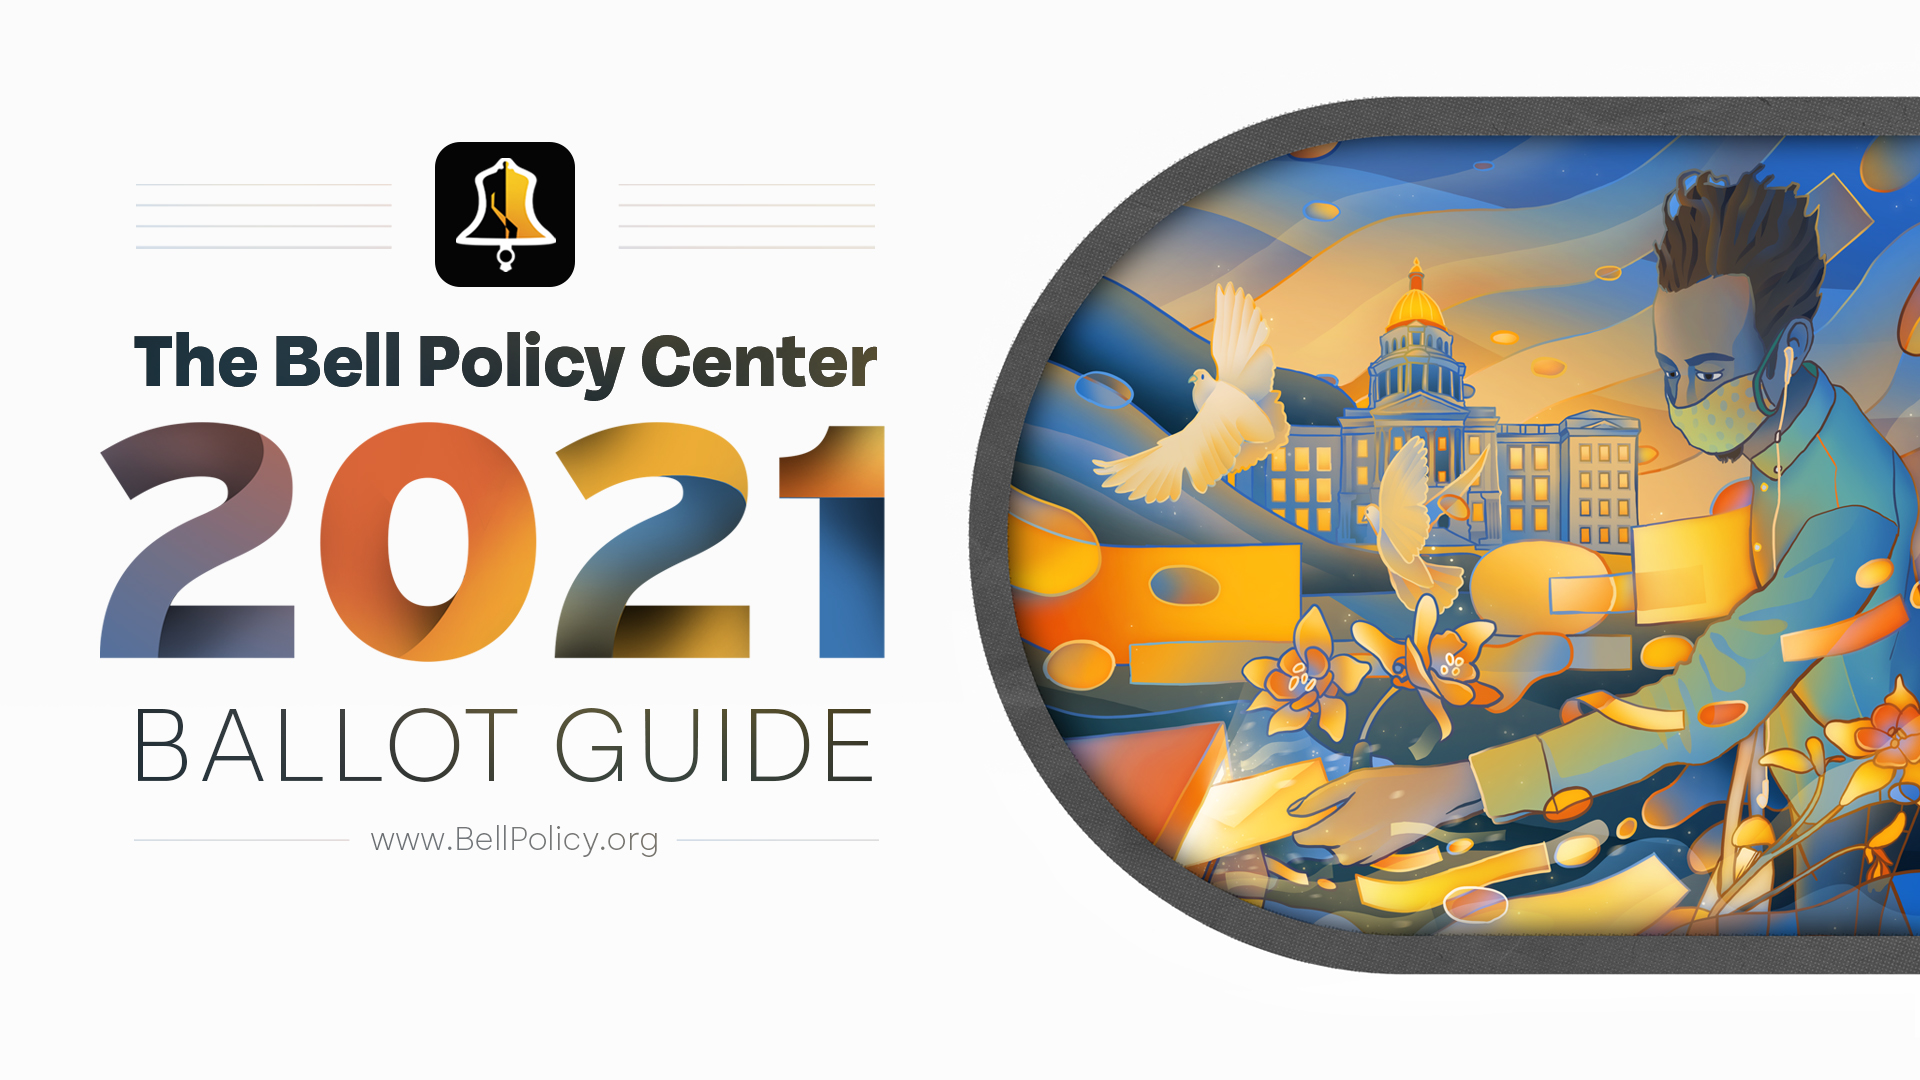 The Bell Policy Center 2021 Ballot Guide